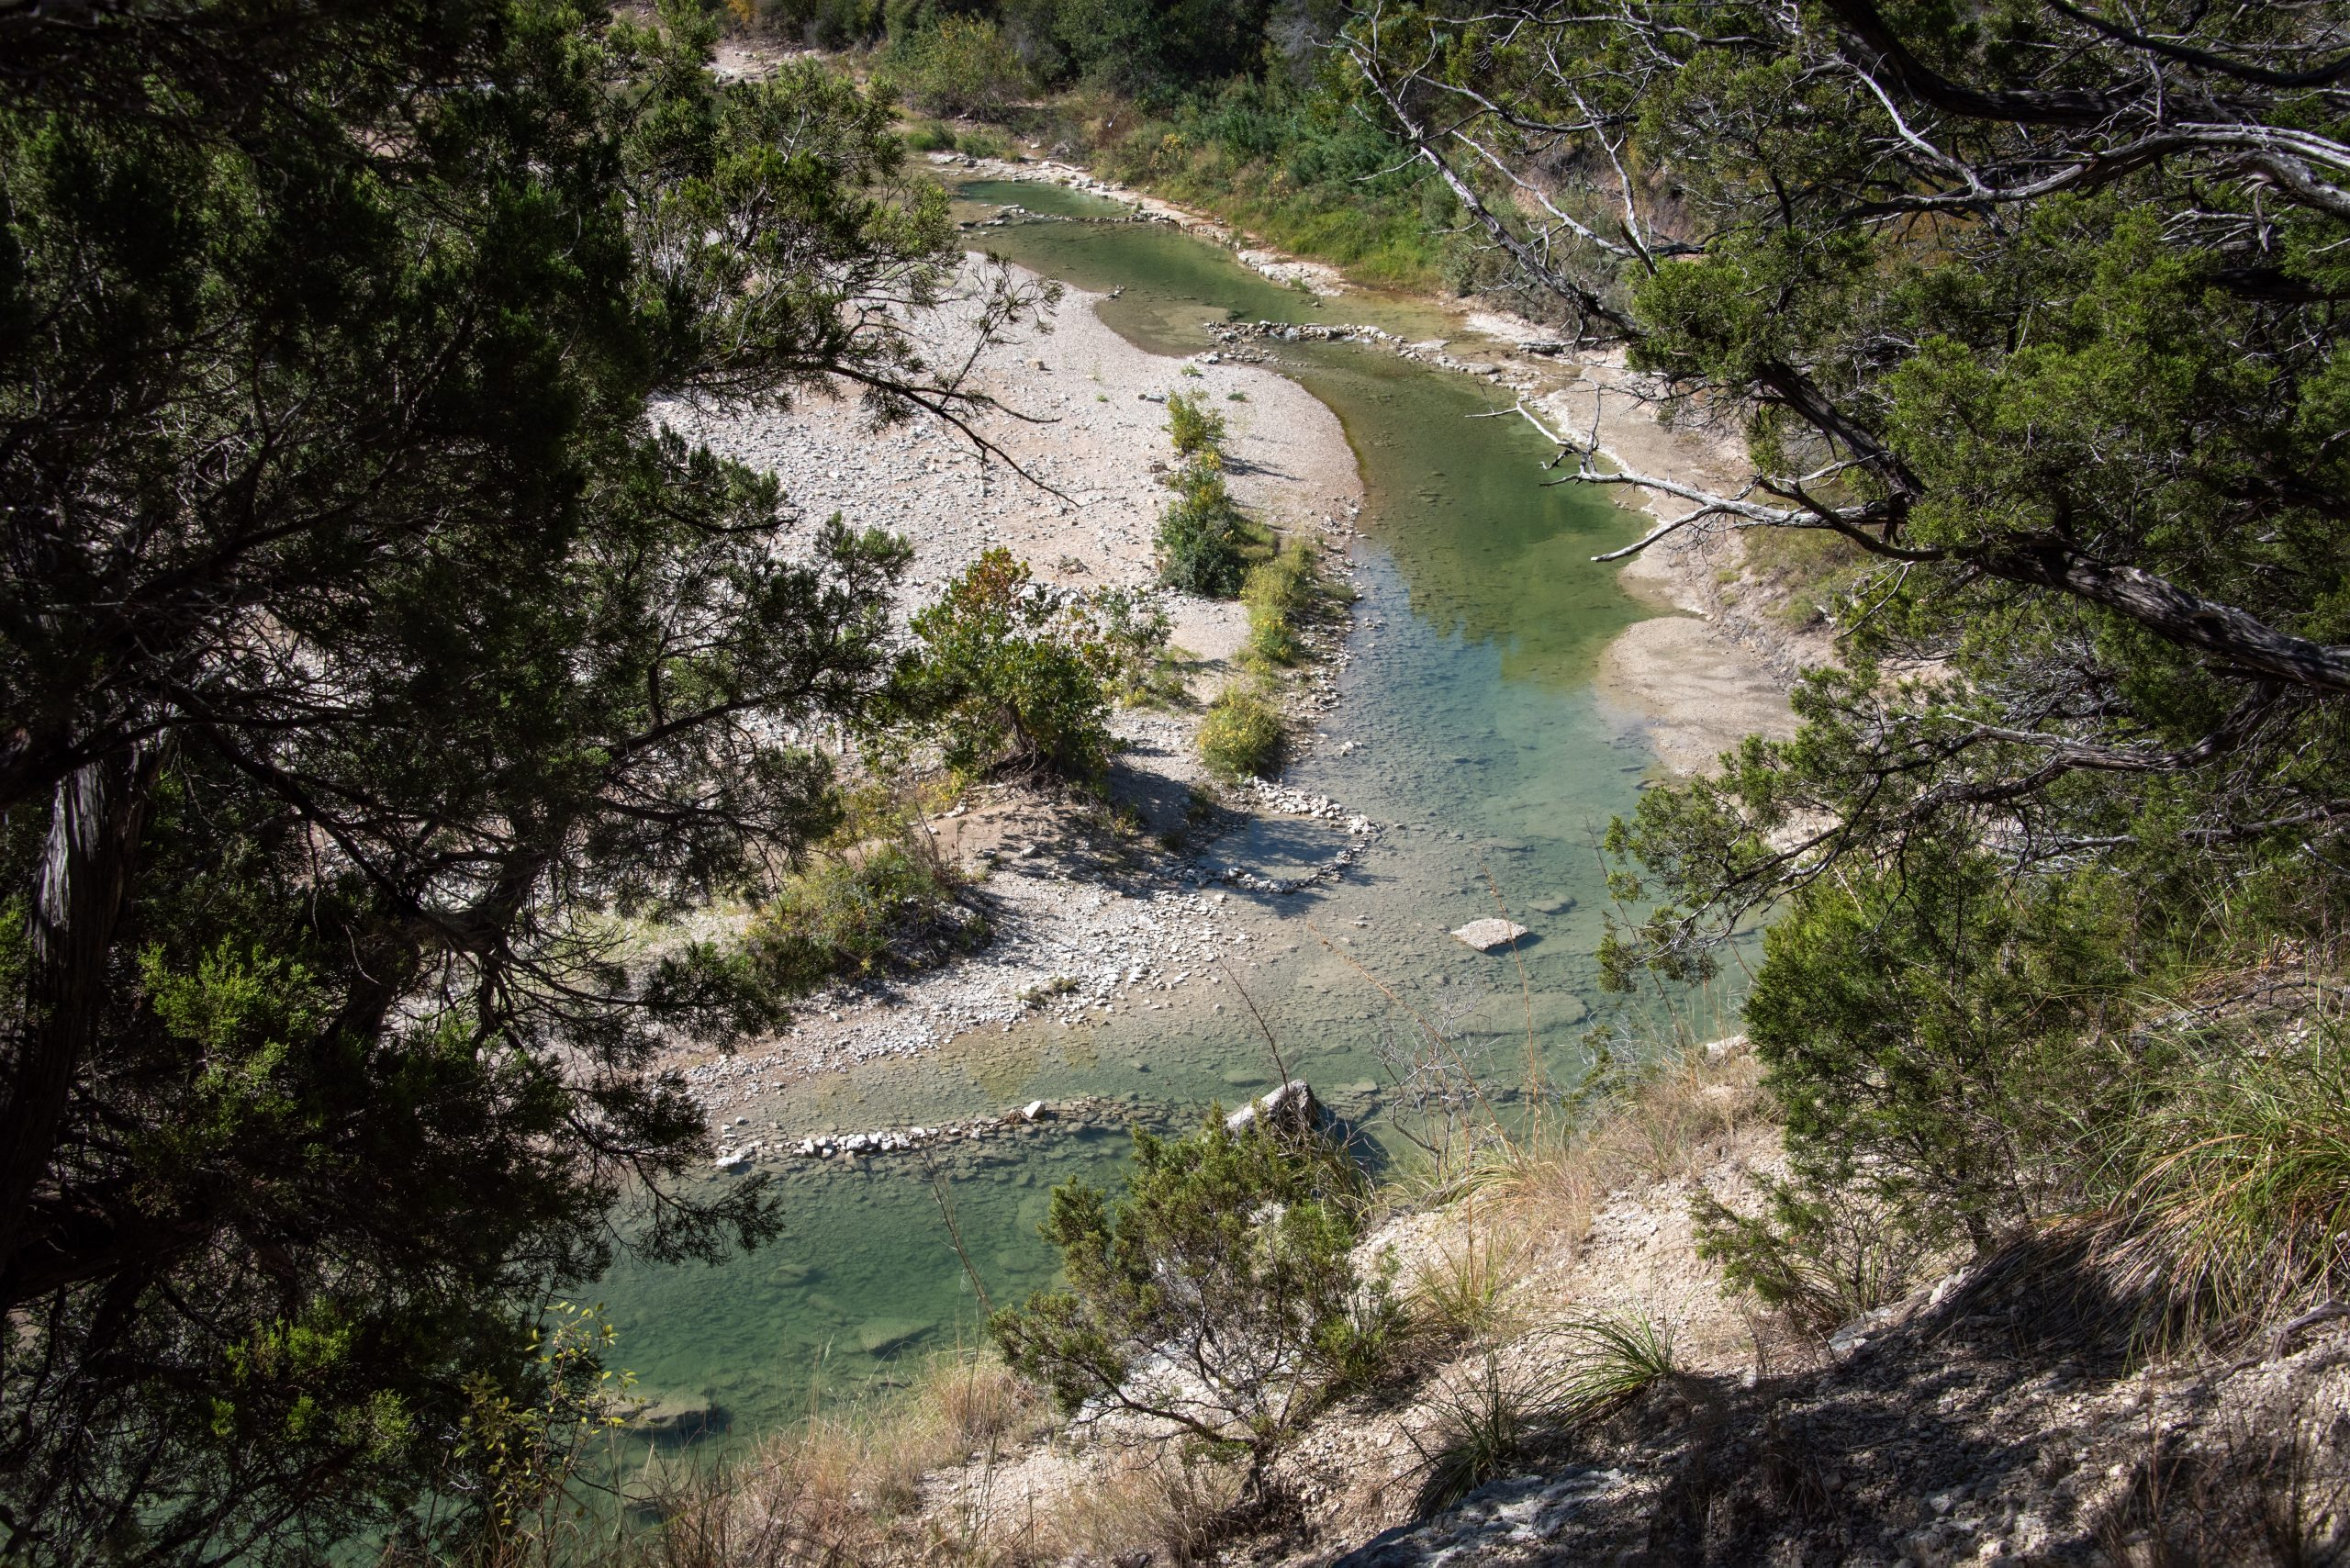 Curving Paluxy River as seen from above in Dinosaur Valley State Park, home to some of the best camping near dallas texas